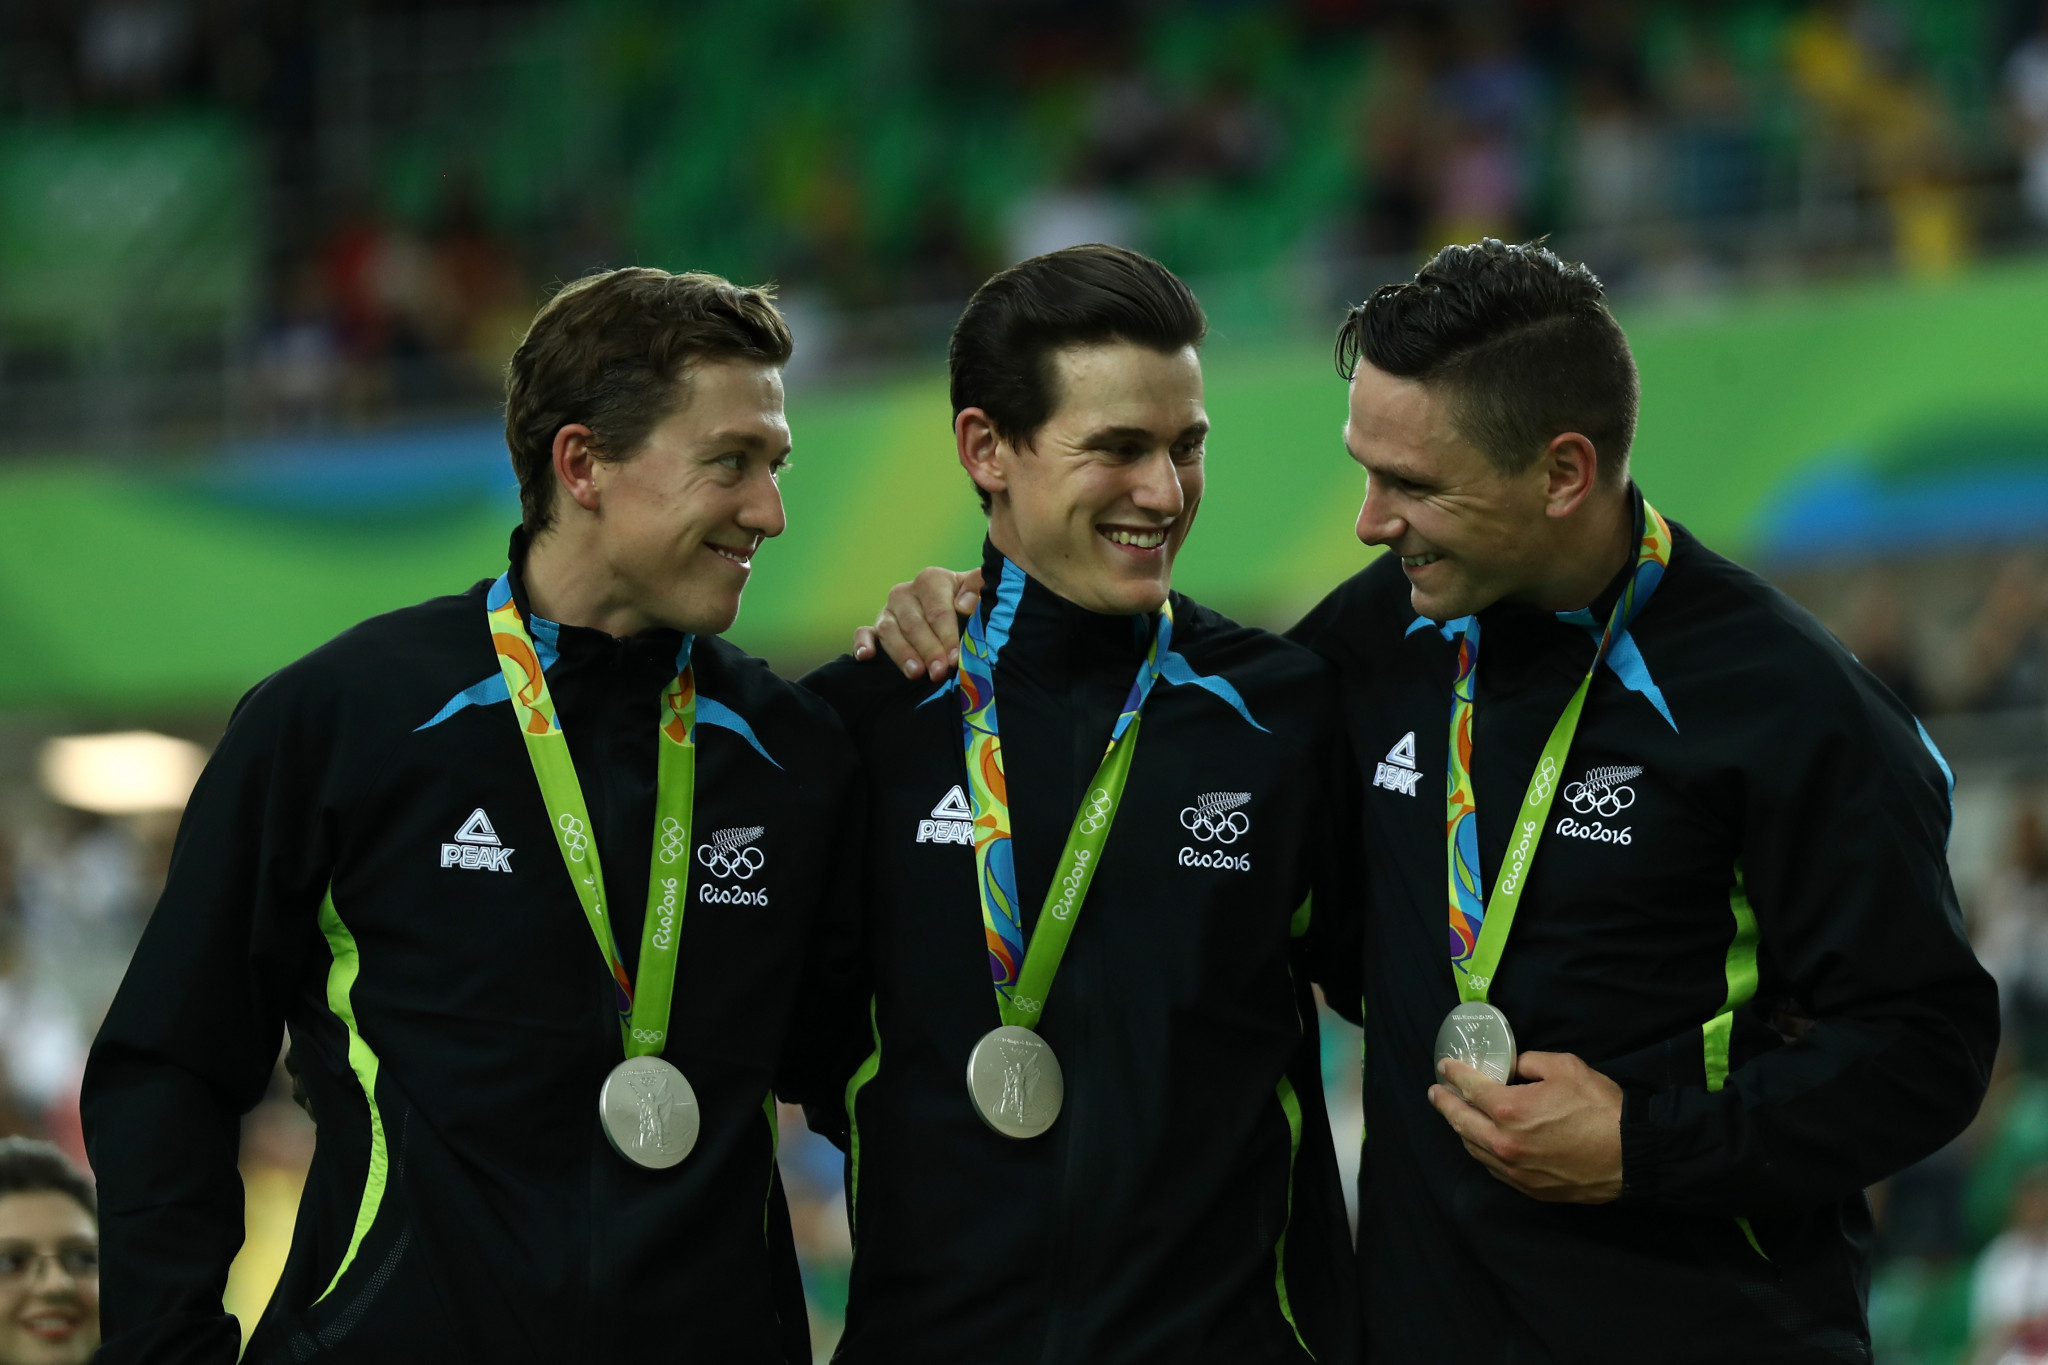 Ethan Mitchell, left, and Sam Webster, centre, have been included in New Zealand's team for Tokyo 2020 after winning team sprint silver at Rio 2016 alongside Edward Dawkins ©Getty Images